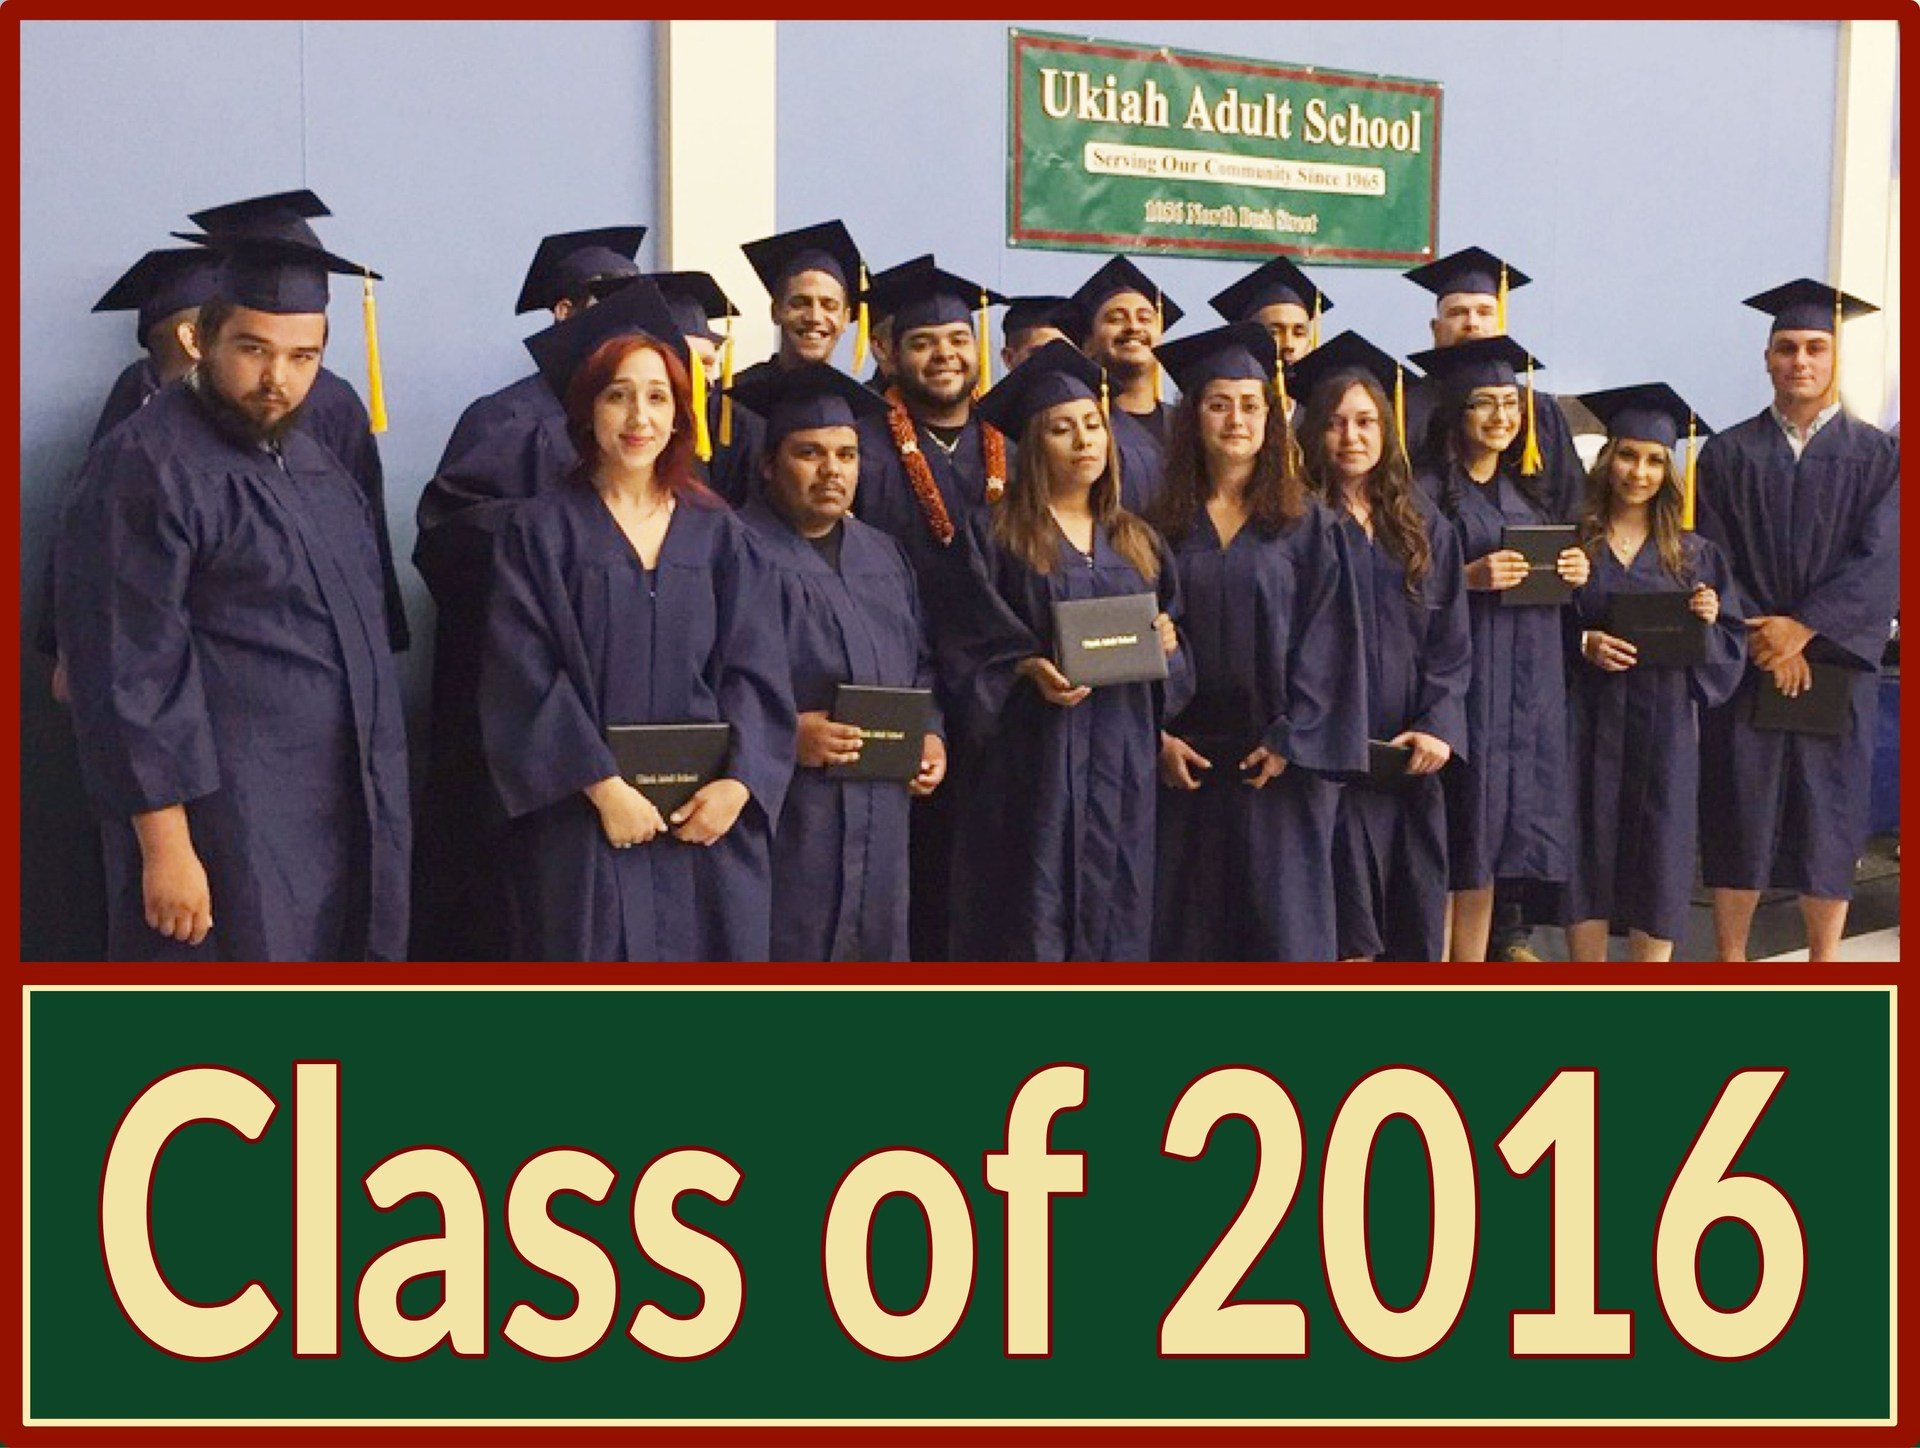 Image of the graduating class of 2016.